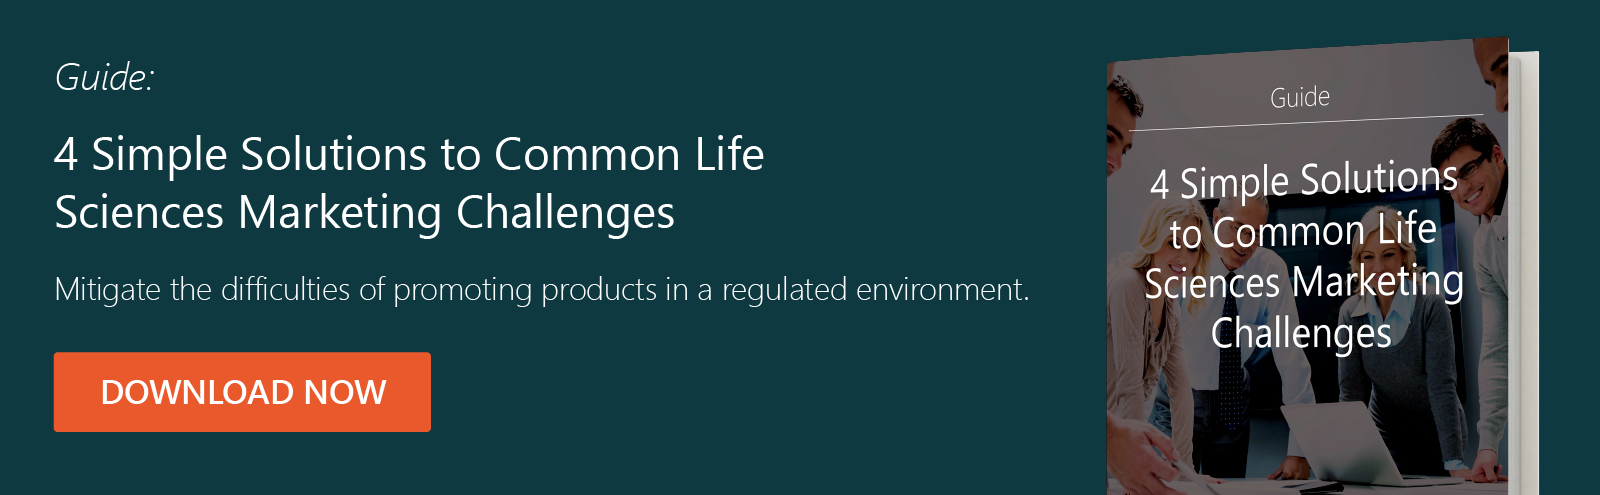 Simple Solutions to Common Life Sciences Marketing Challenges